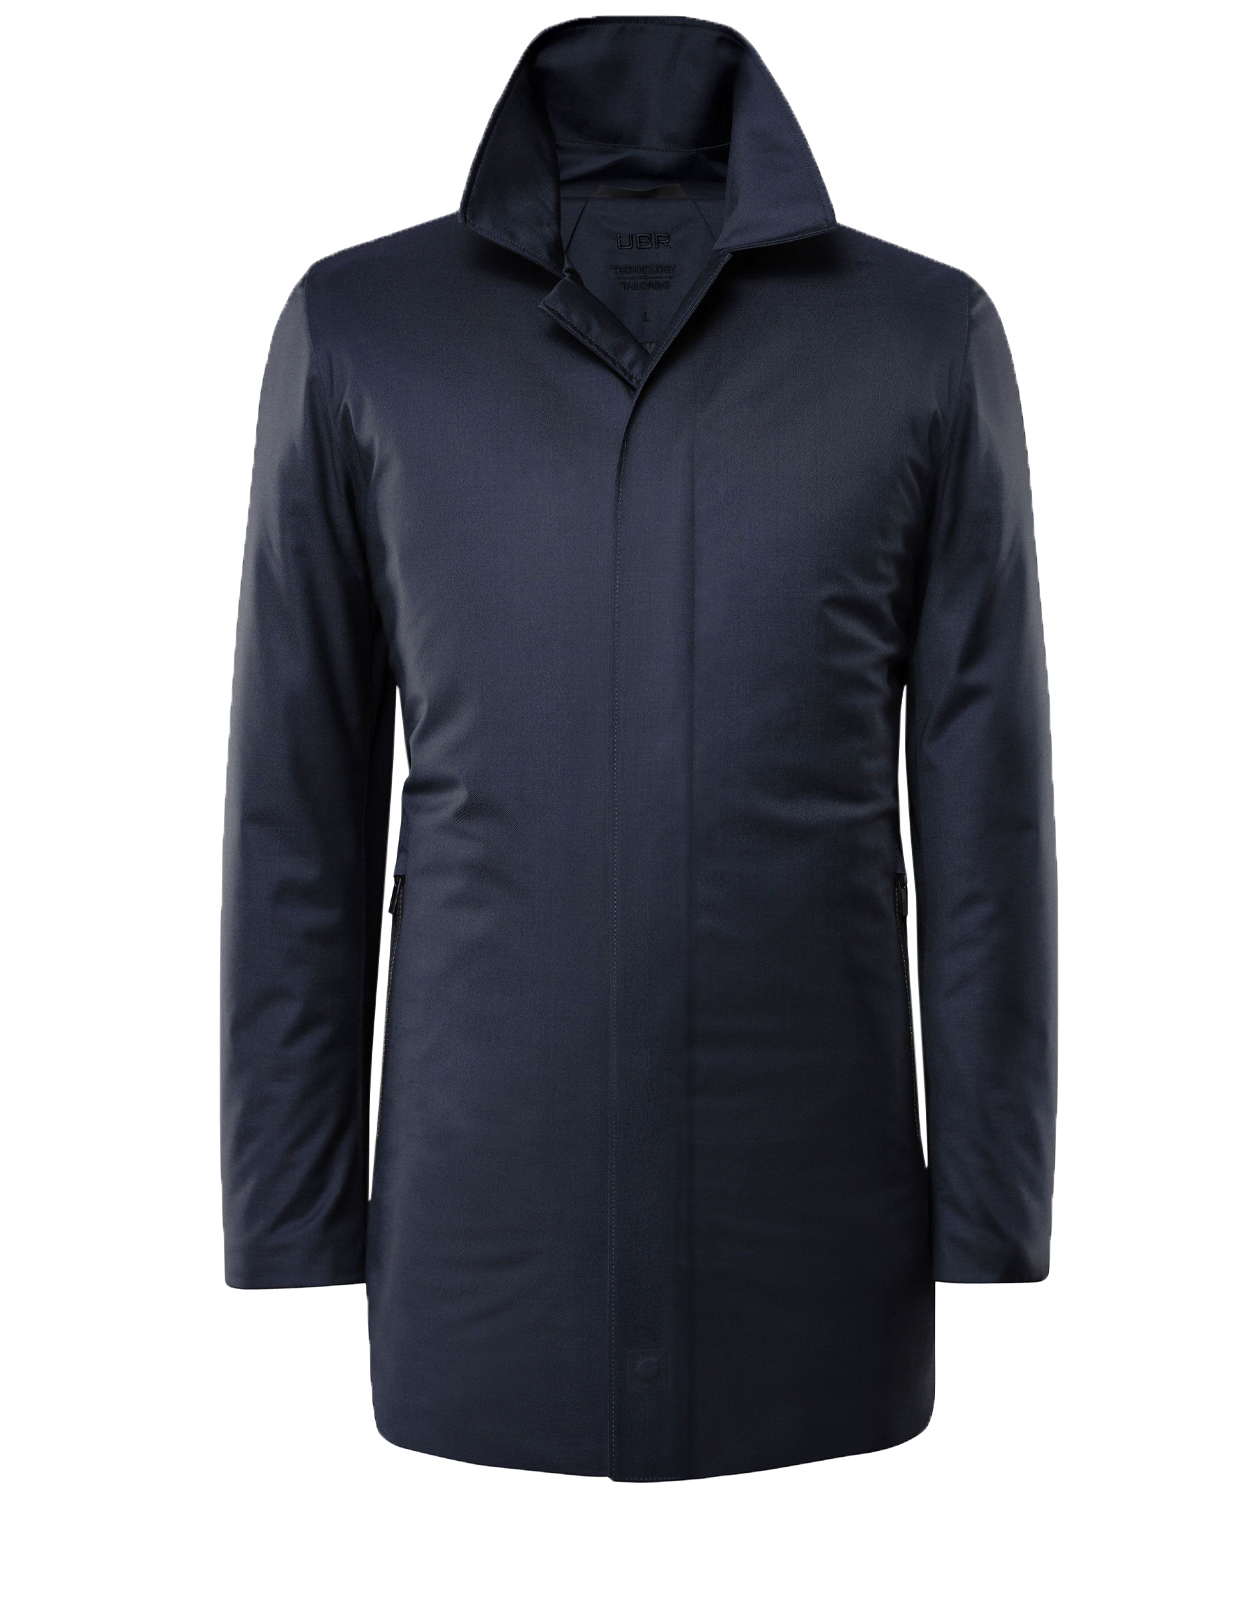 Regulator Savile Coat LTD Wool Navy